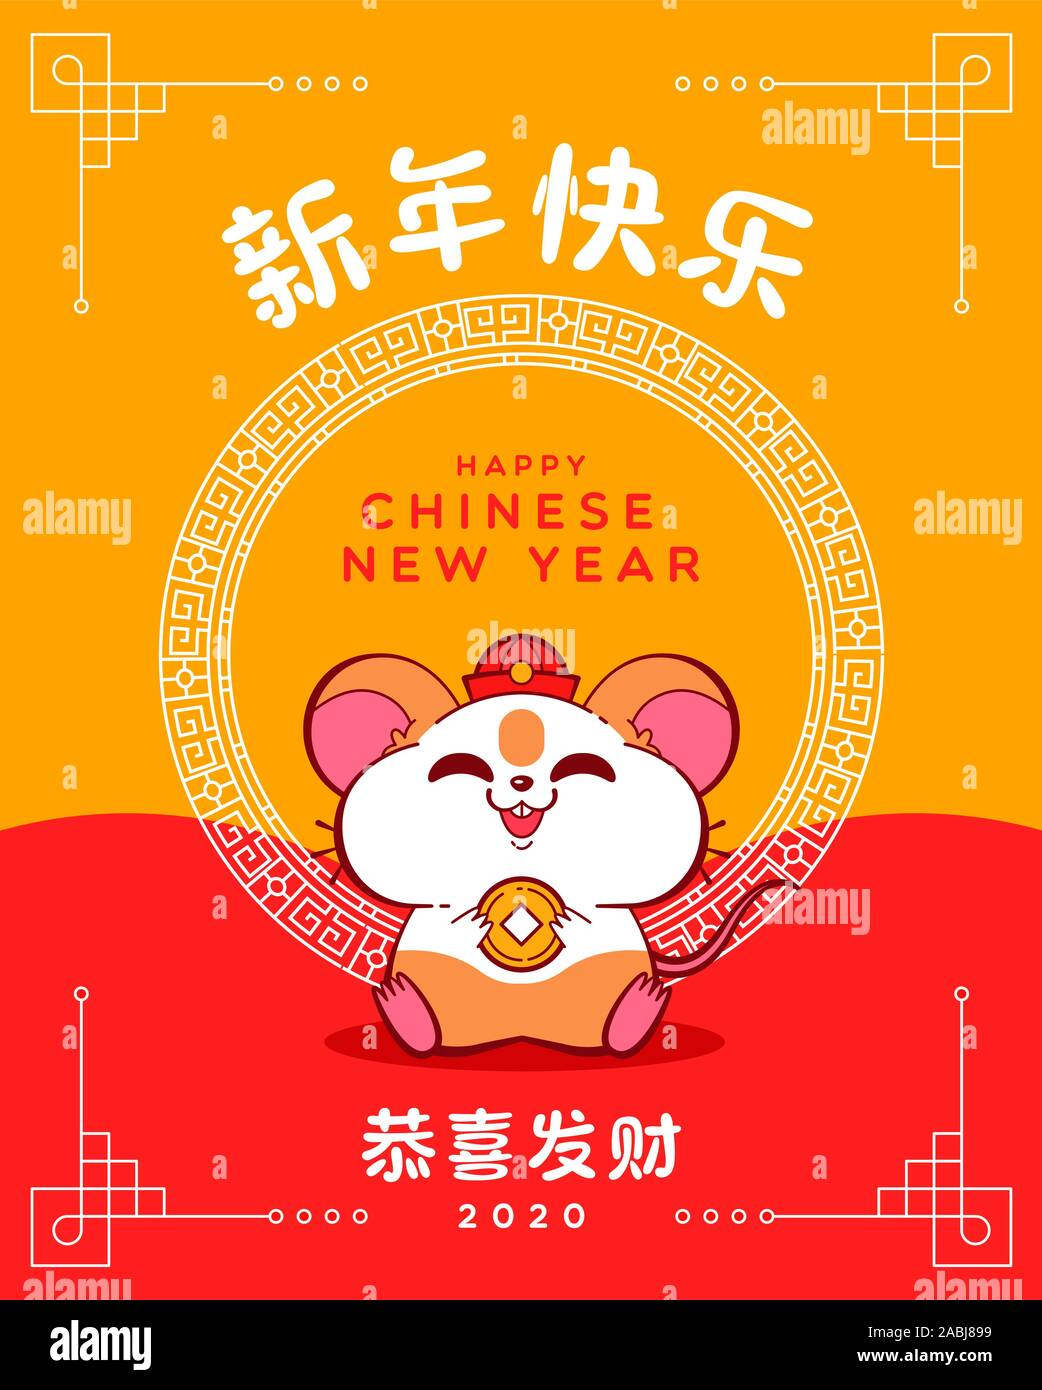 Chinese New year 2020 greeting card illustration of funny ...